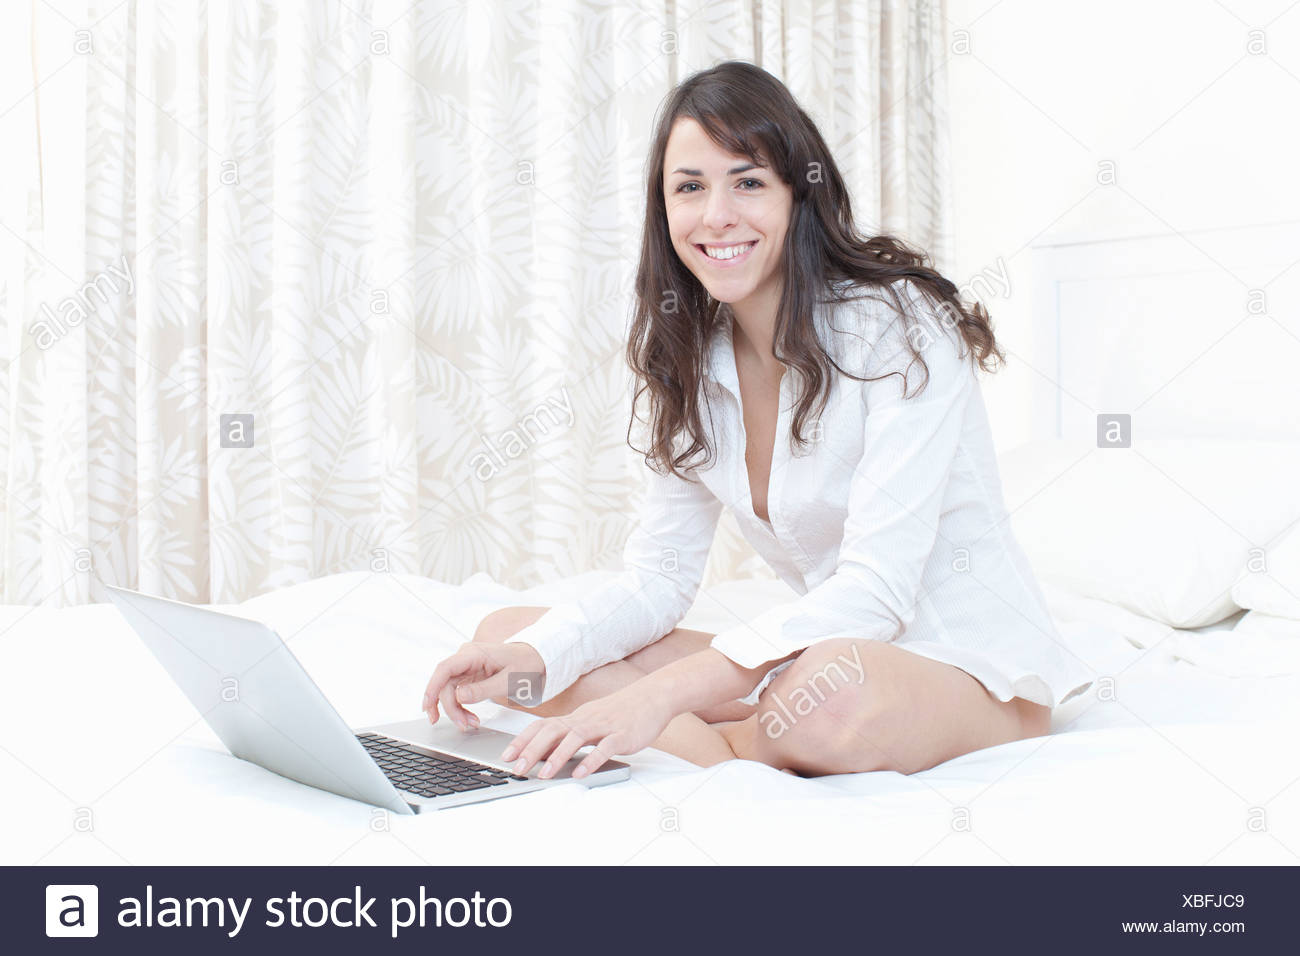 Woman using laptop on bed - Stock Image